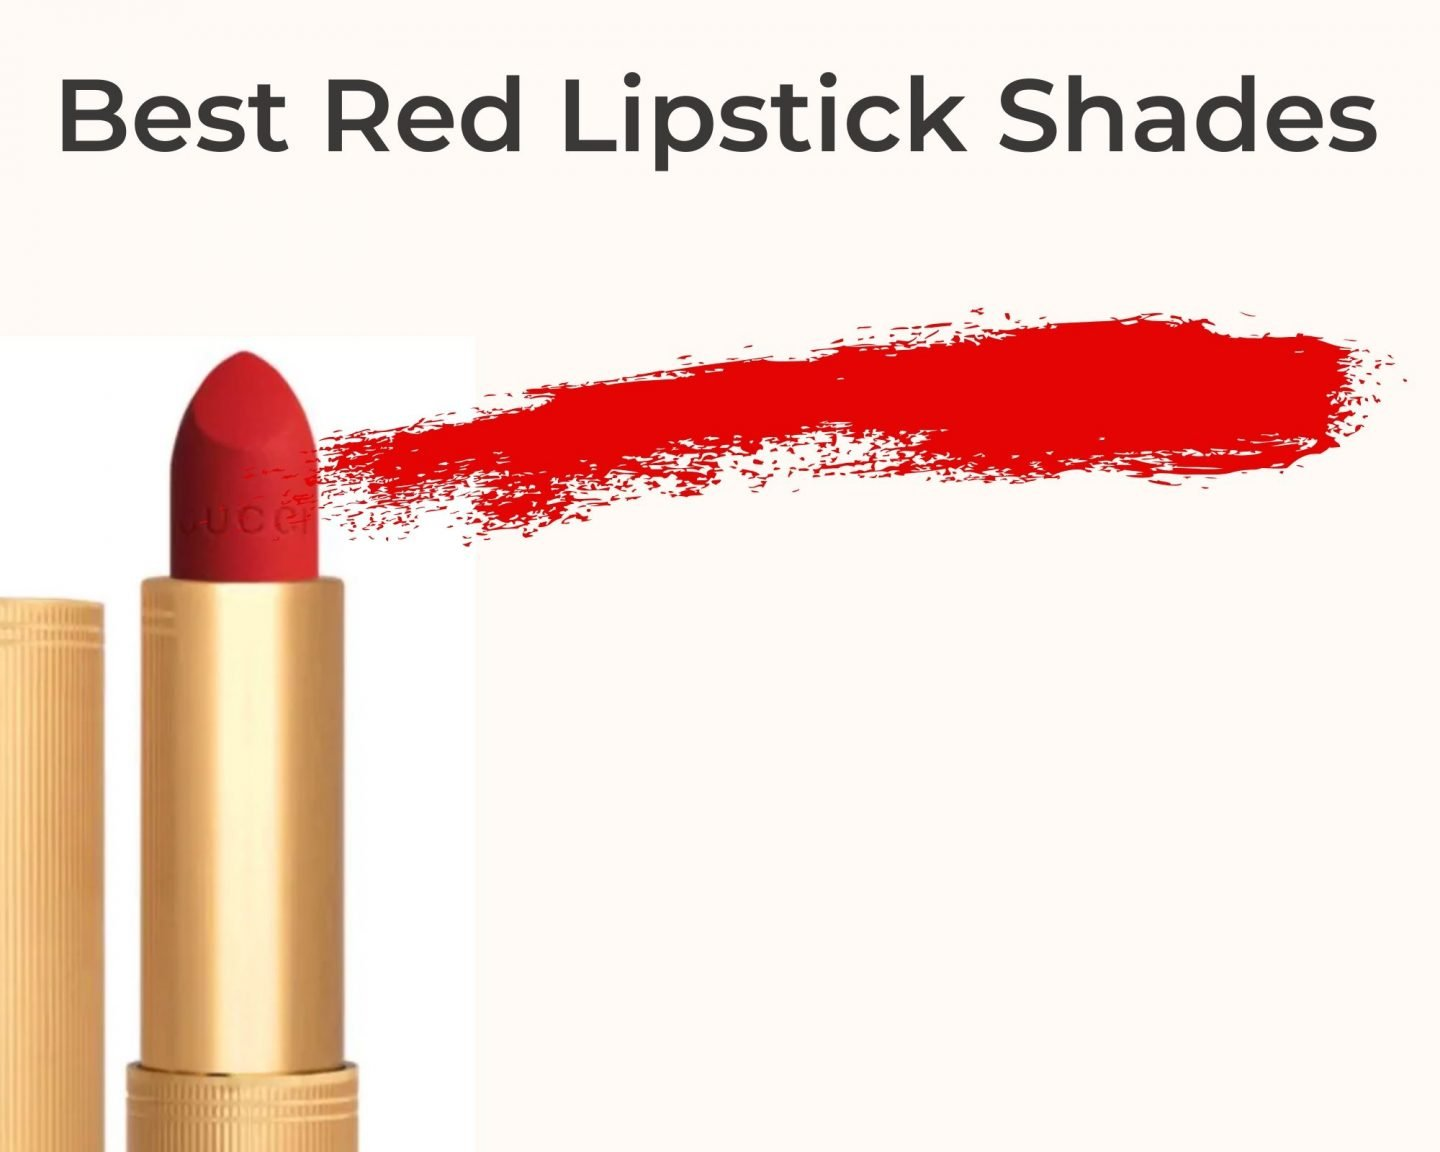 Best Red Lipstick Shades 2020